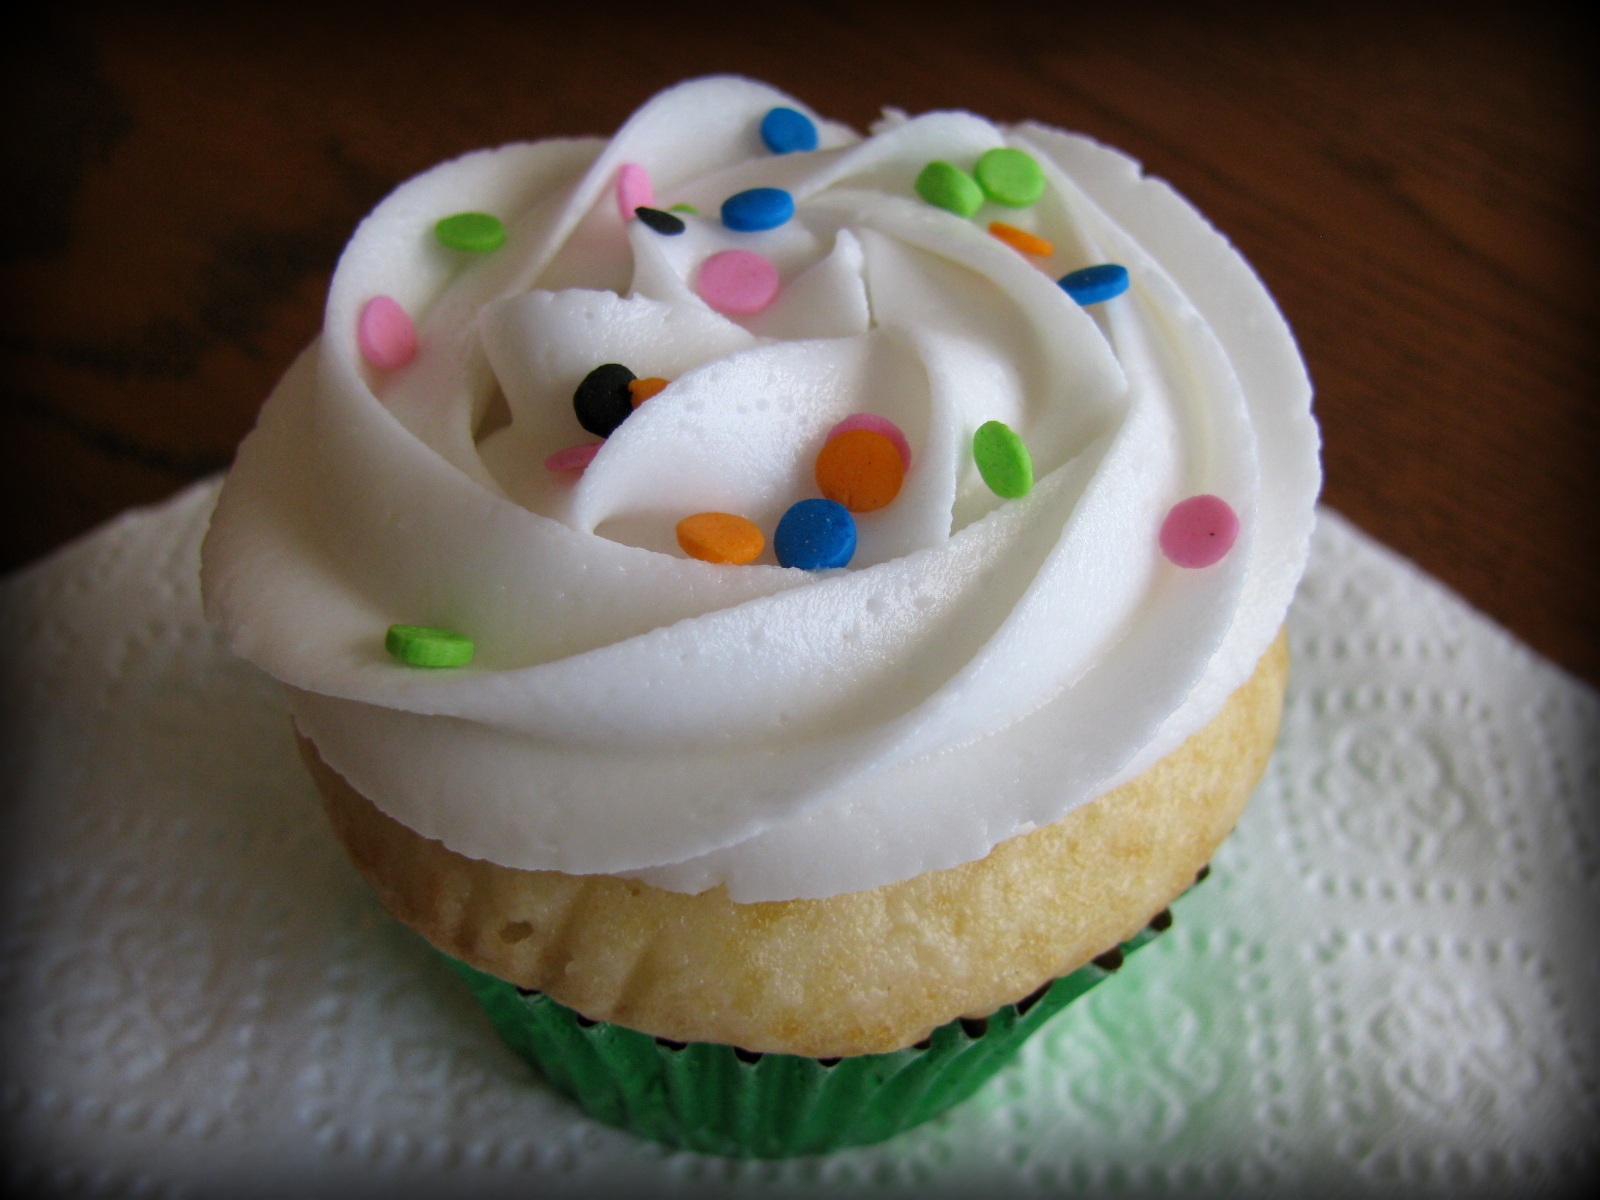 Cake Icing Recipe With Crisco: White Frosting